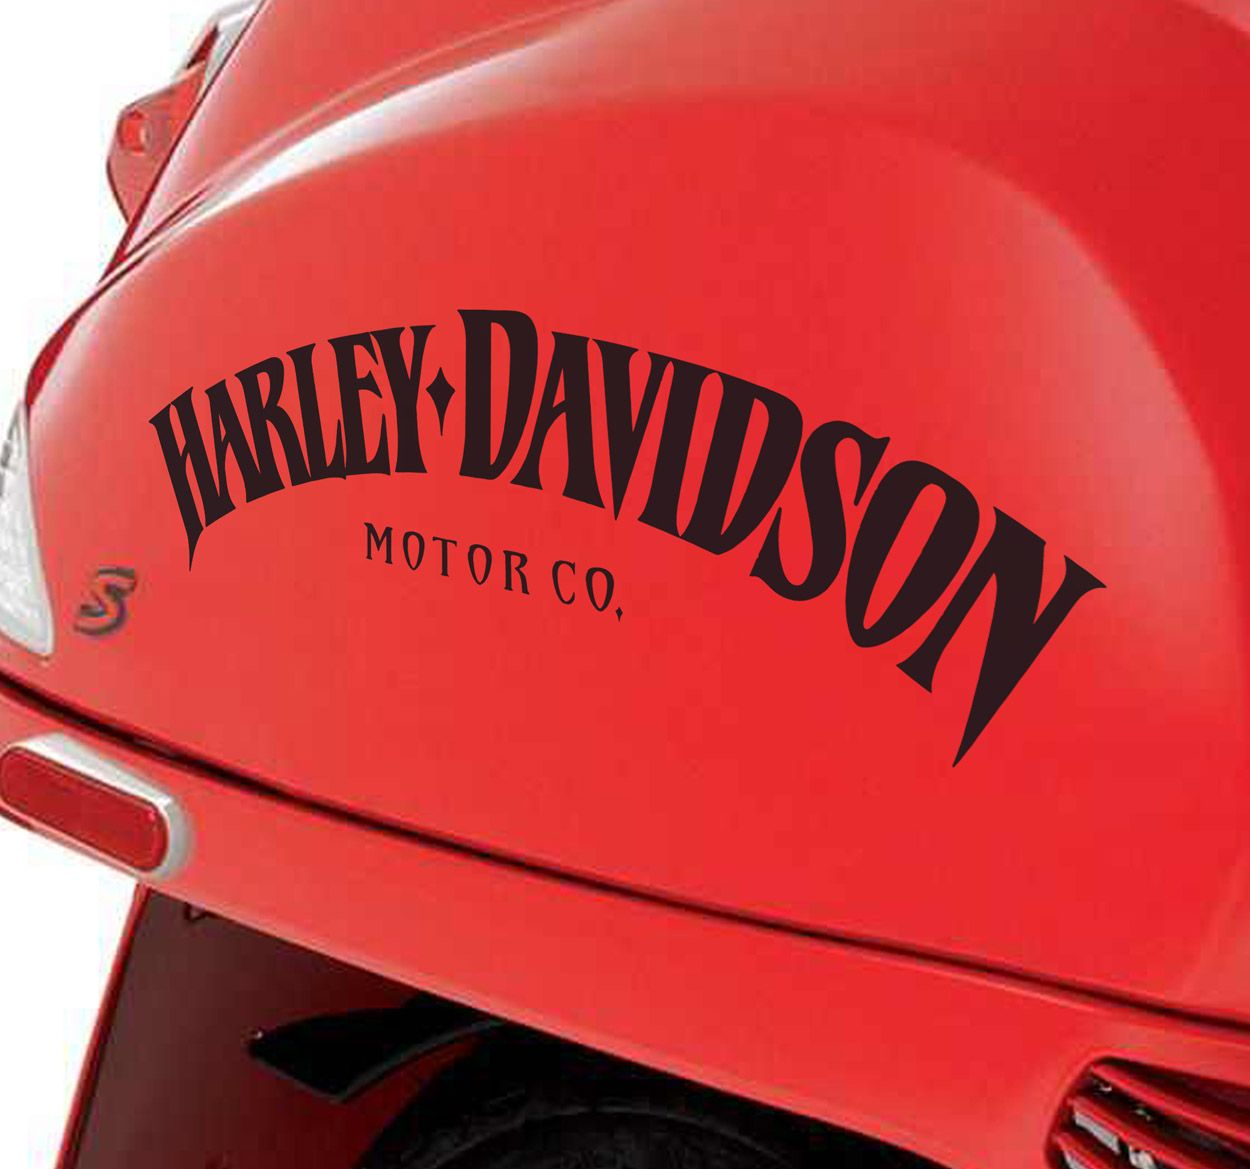 A Great Sticker Of The Harley Davidson Classic Lettering To - Stickers for motorcycles harley davidsonsharley davidson decalharley davidson custom decal stickers